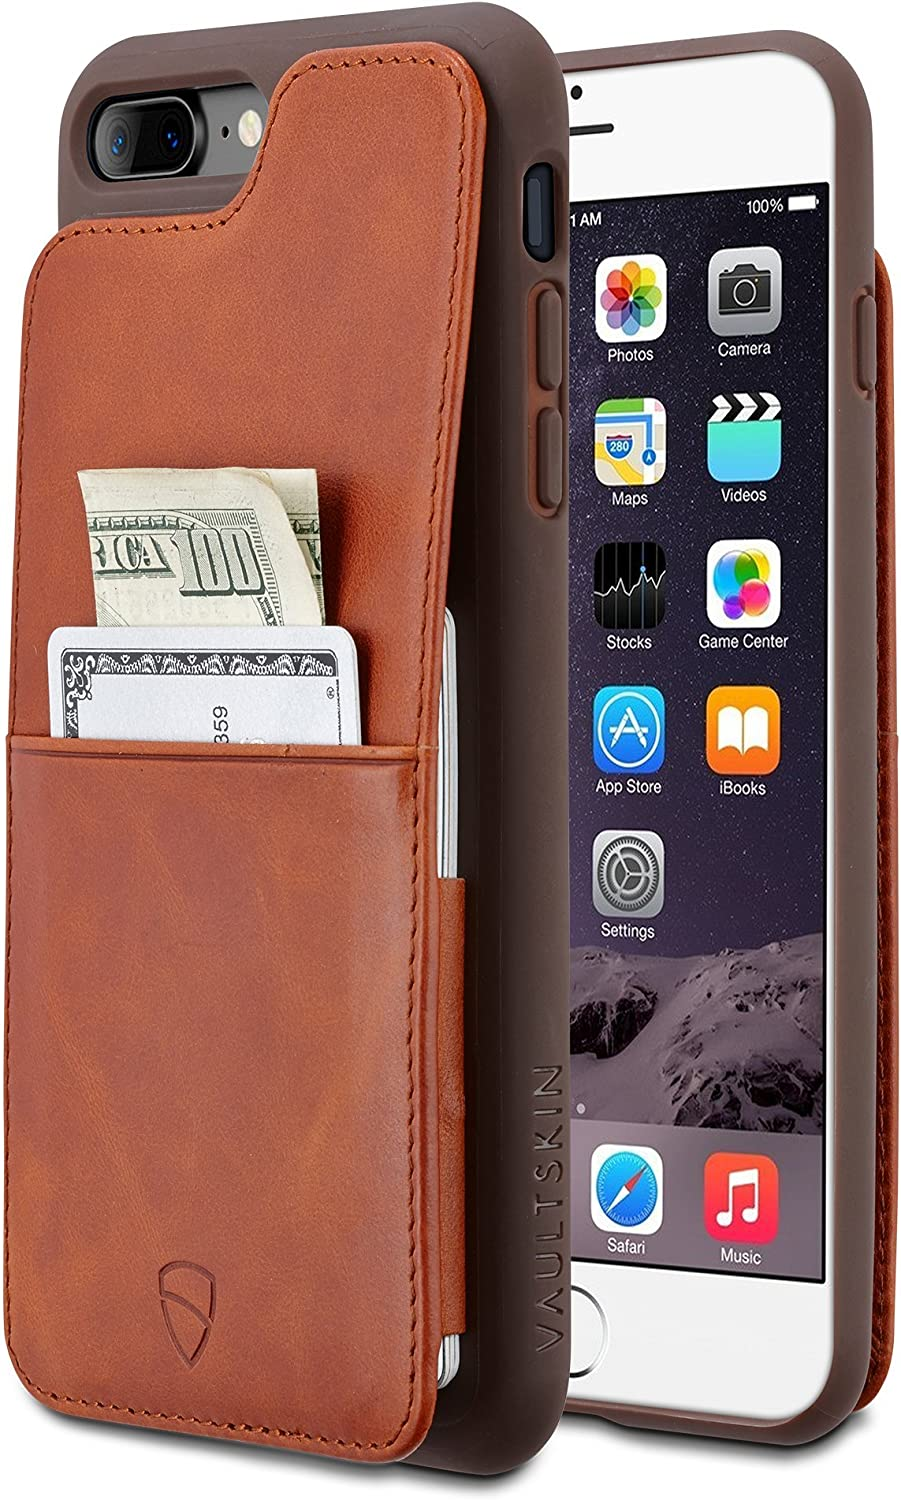 iPhone 7/8 Plus Wallet Case, Vaultskin Eton Armour for iPhone 7/8 Plus (5.5) Slim Minimalist Bumper Case for Cards and Cash, Genuine Leather - Holds up to 10 Cards (iPhone 7/8 Plus, Cognac)